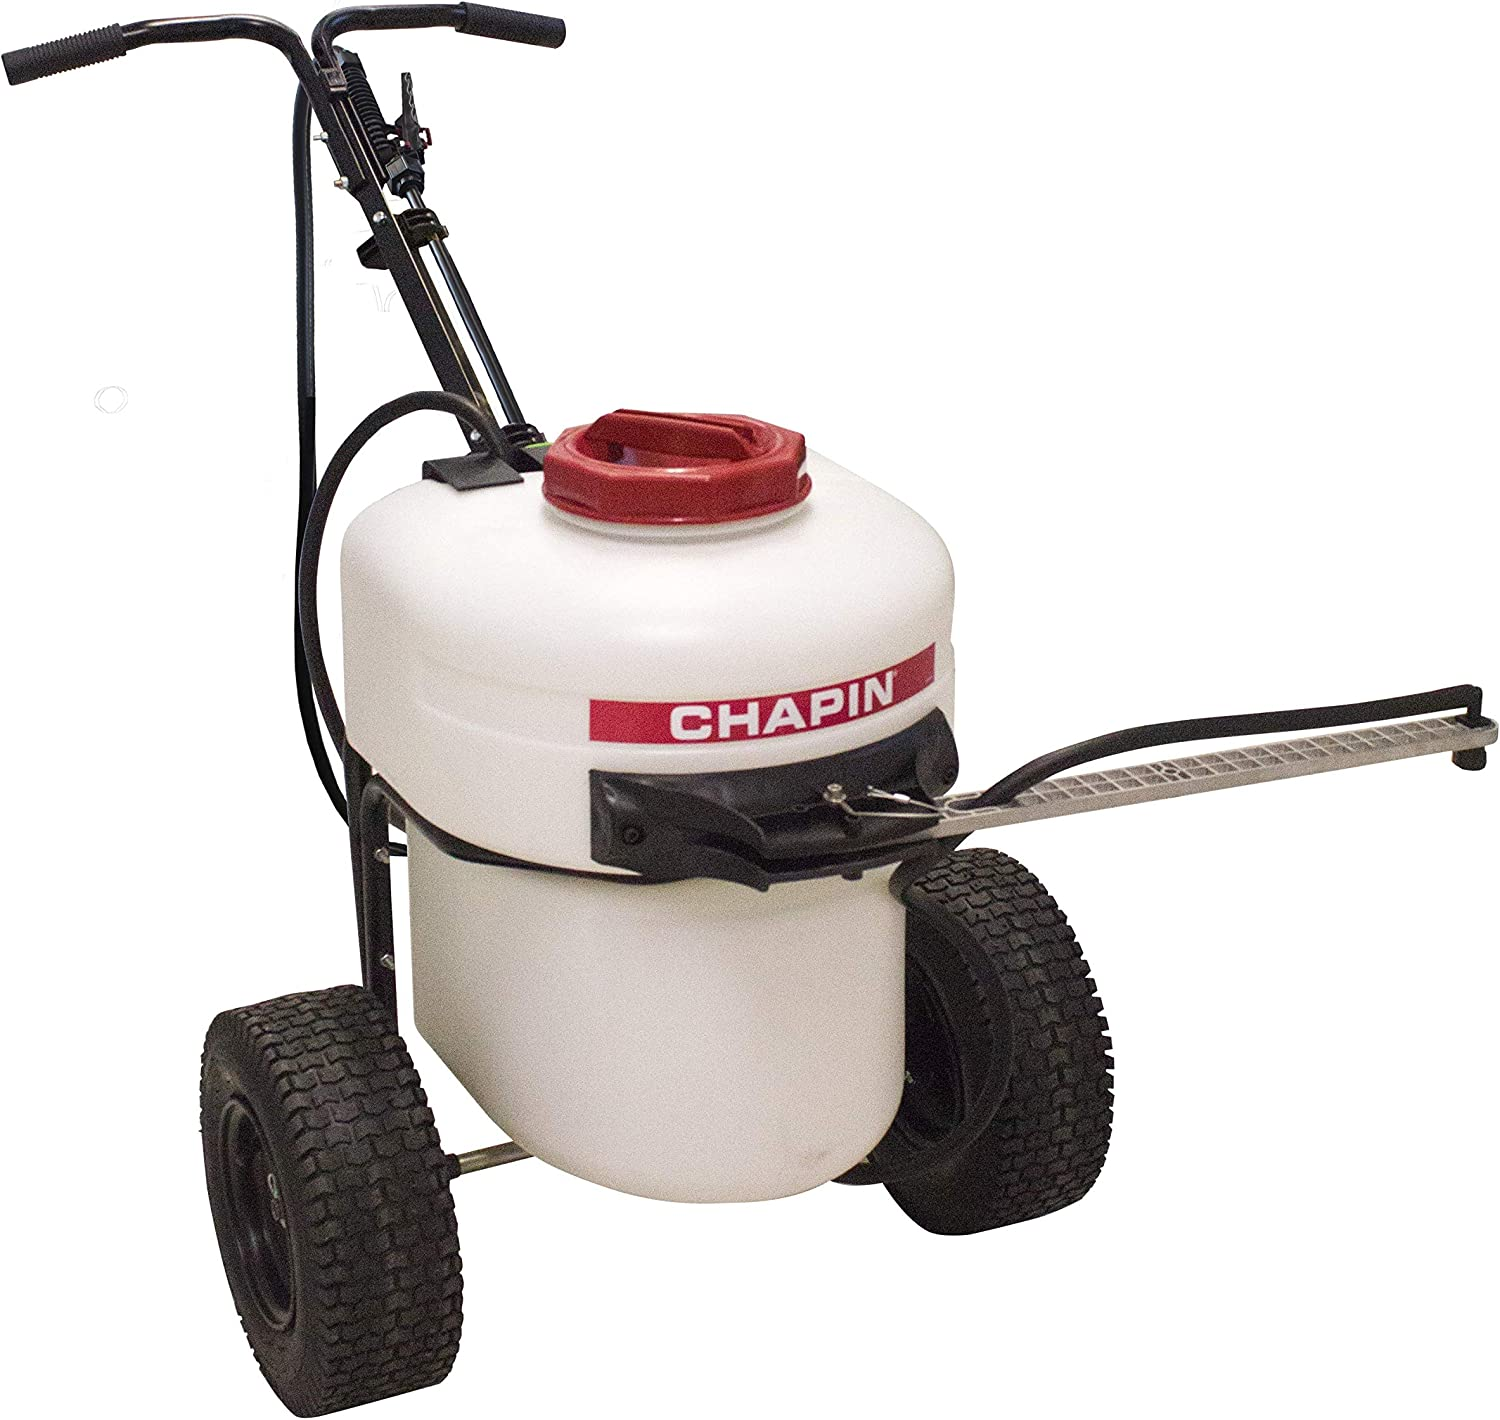 Chapin 97902 12 Gallon Battery Operated Push Sprayer, Translucent White